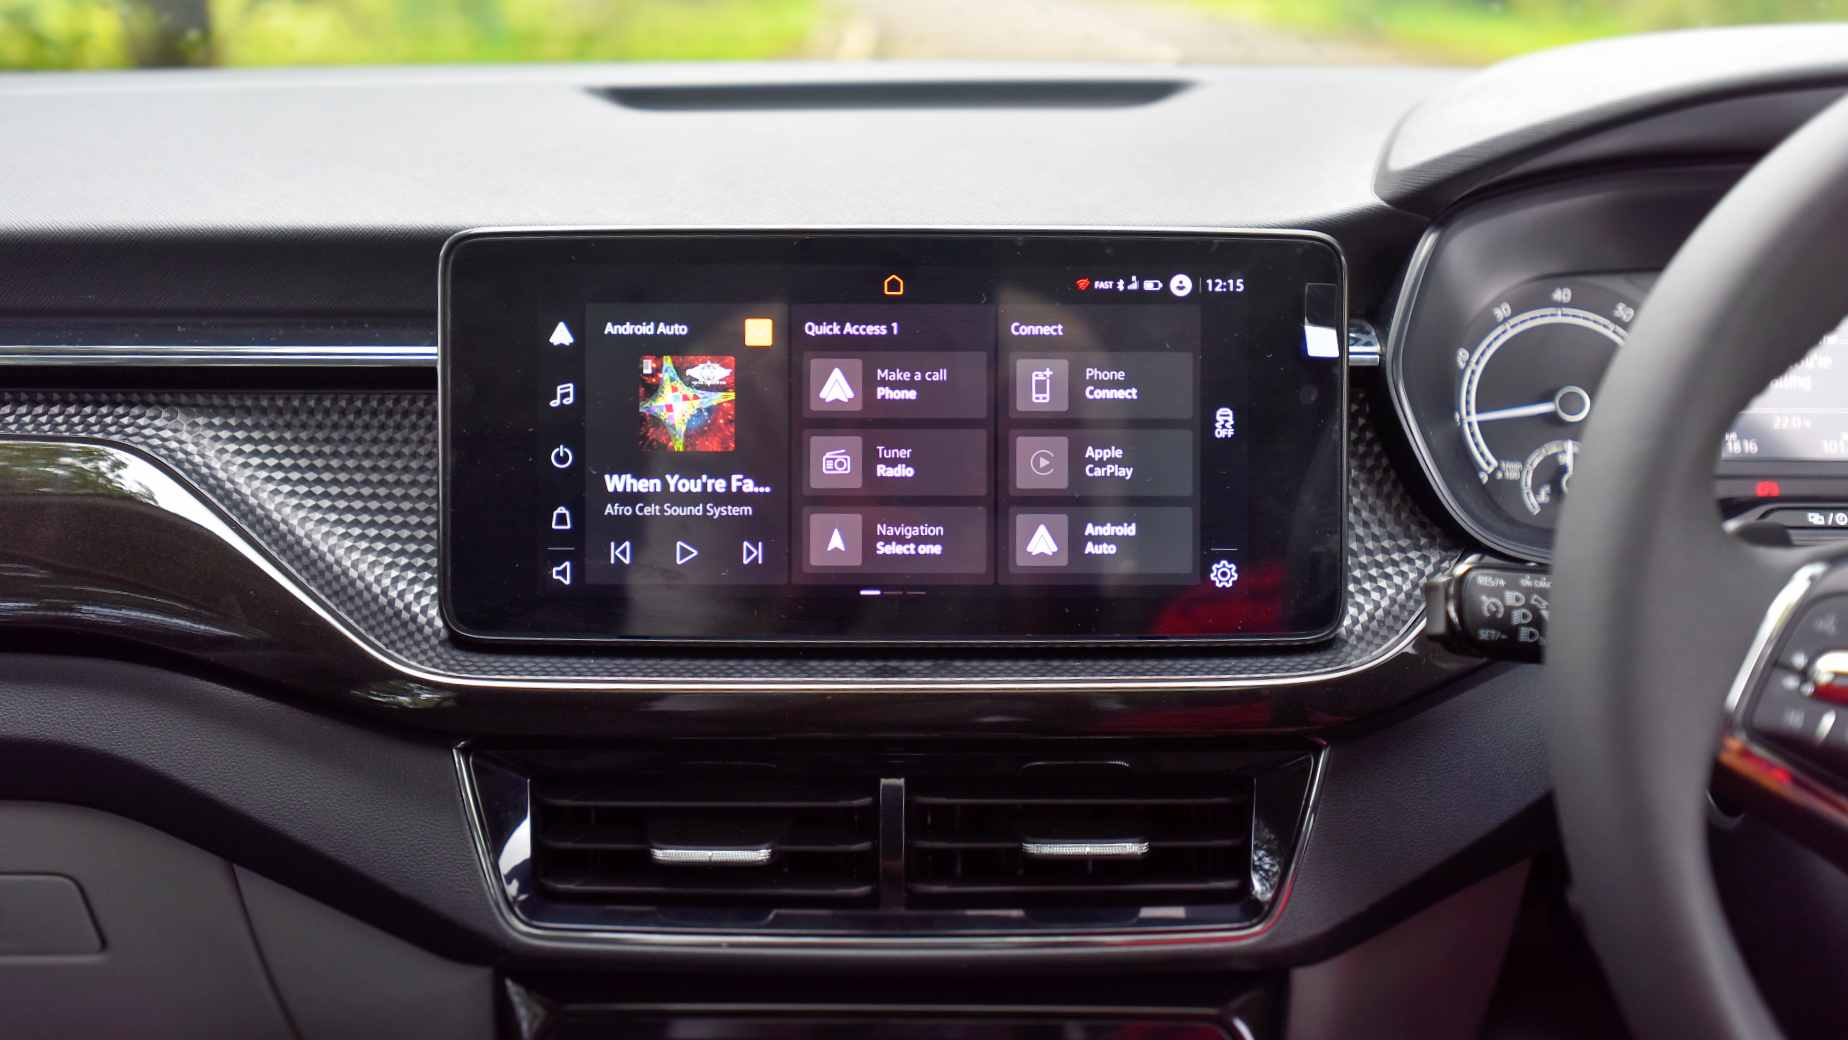 Items on the 10-inch touchscreen remain perfectly legible even in daylight glare, and the system is slick overall. Image: Overdrive/Anis Shaikh